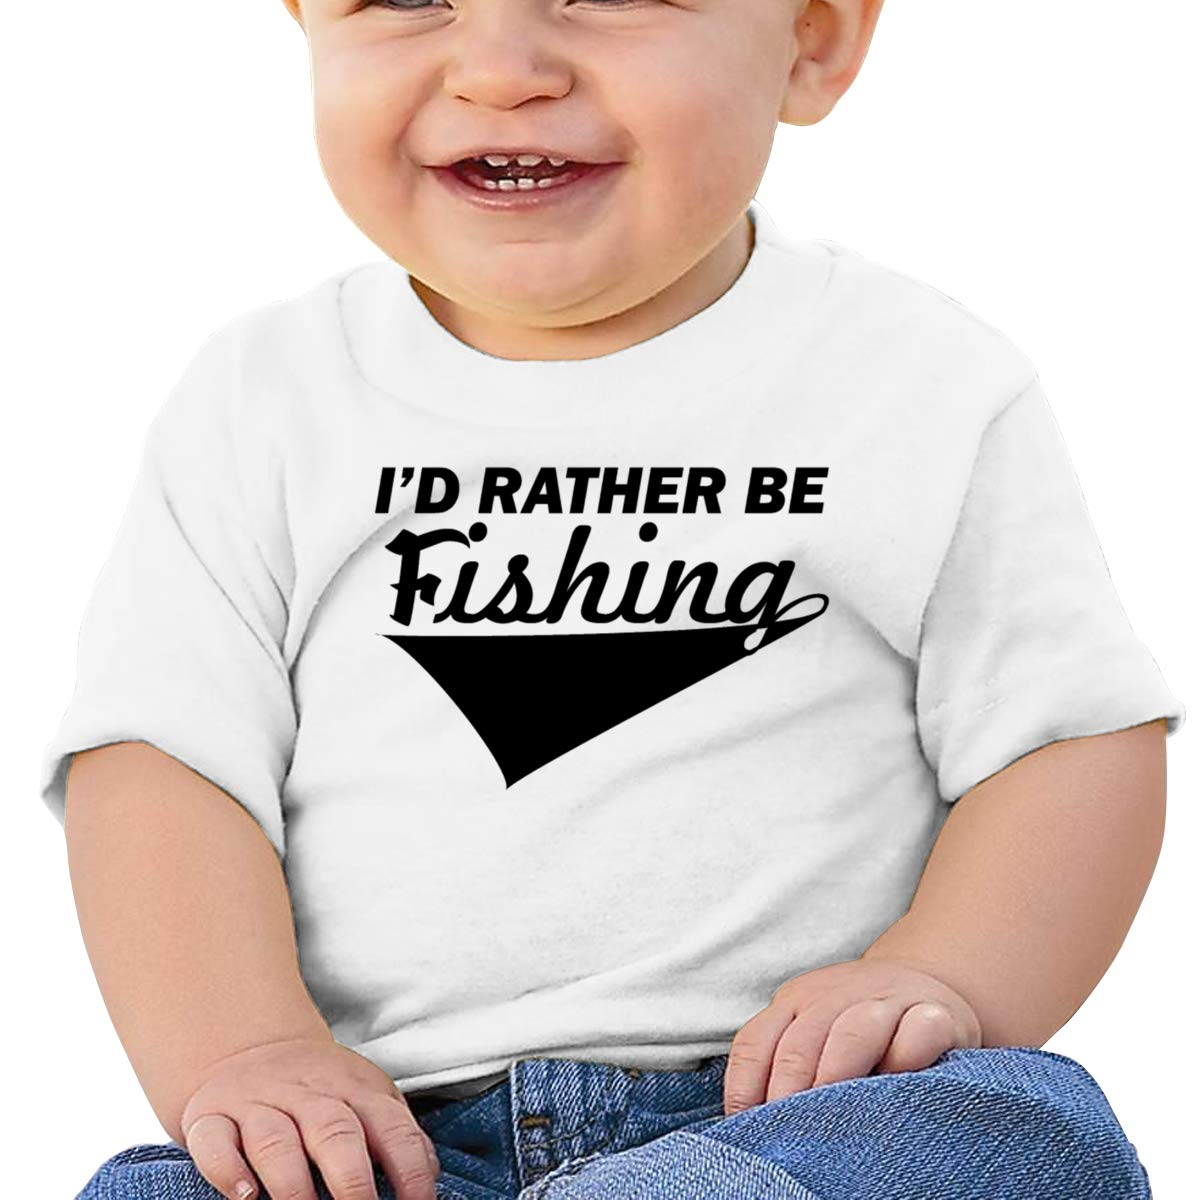 Qiop Nee I D Rather Be Fishing 5 Short-Sleeves T-Shirt Baby Boys